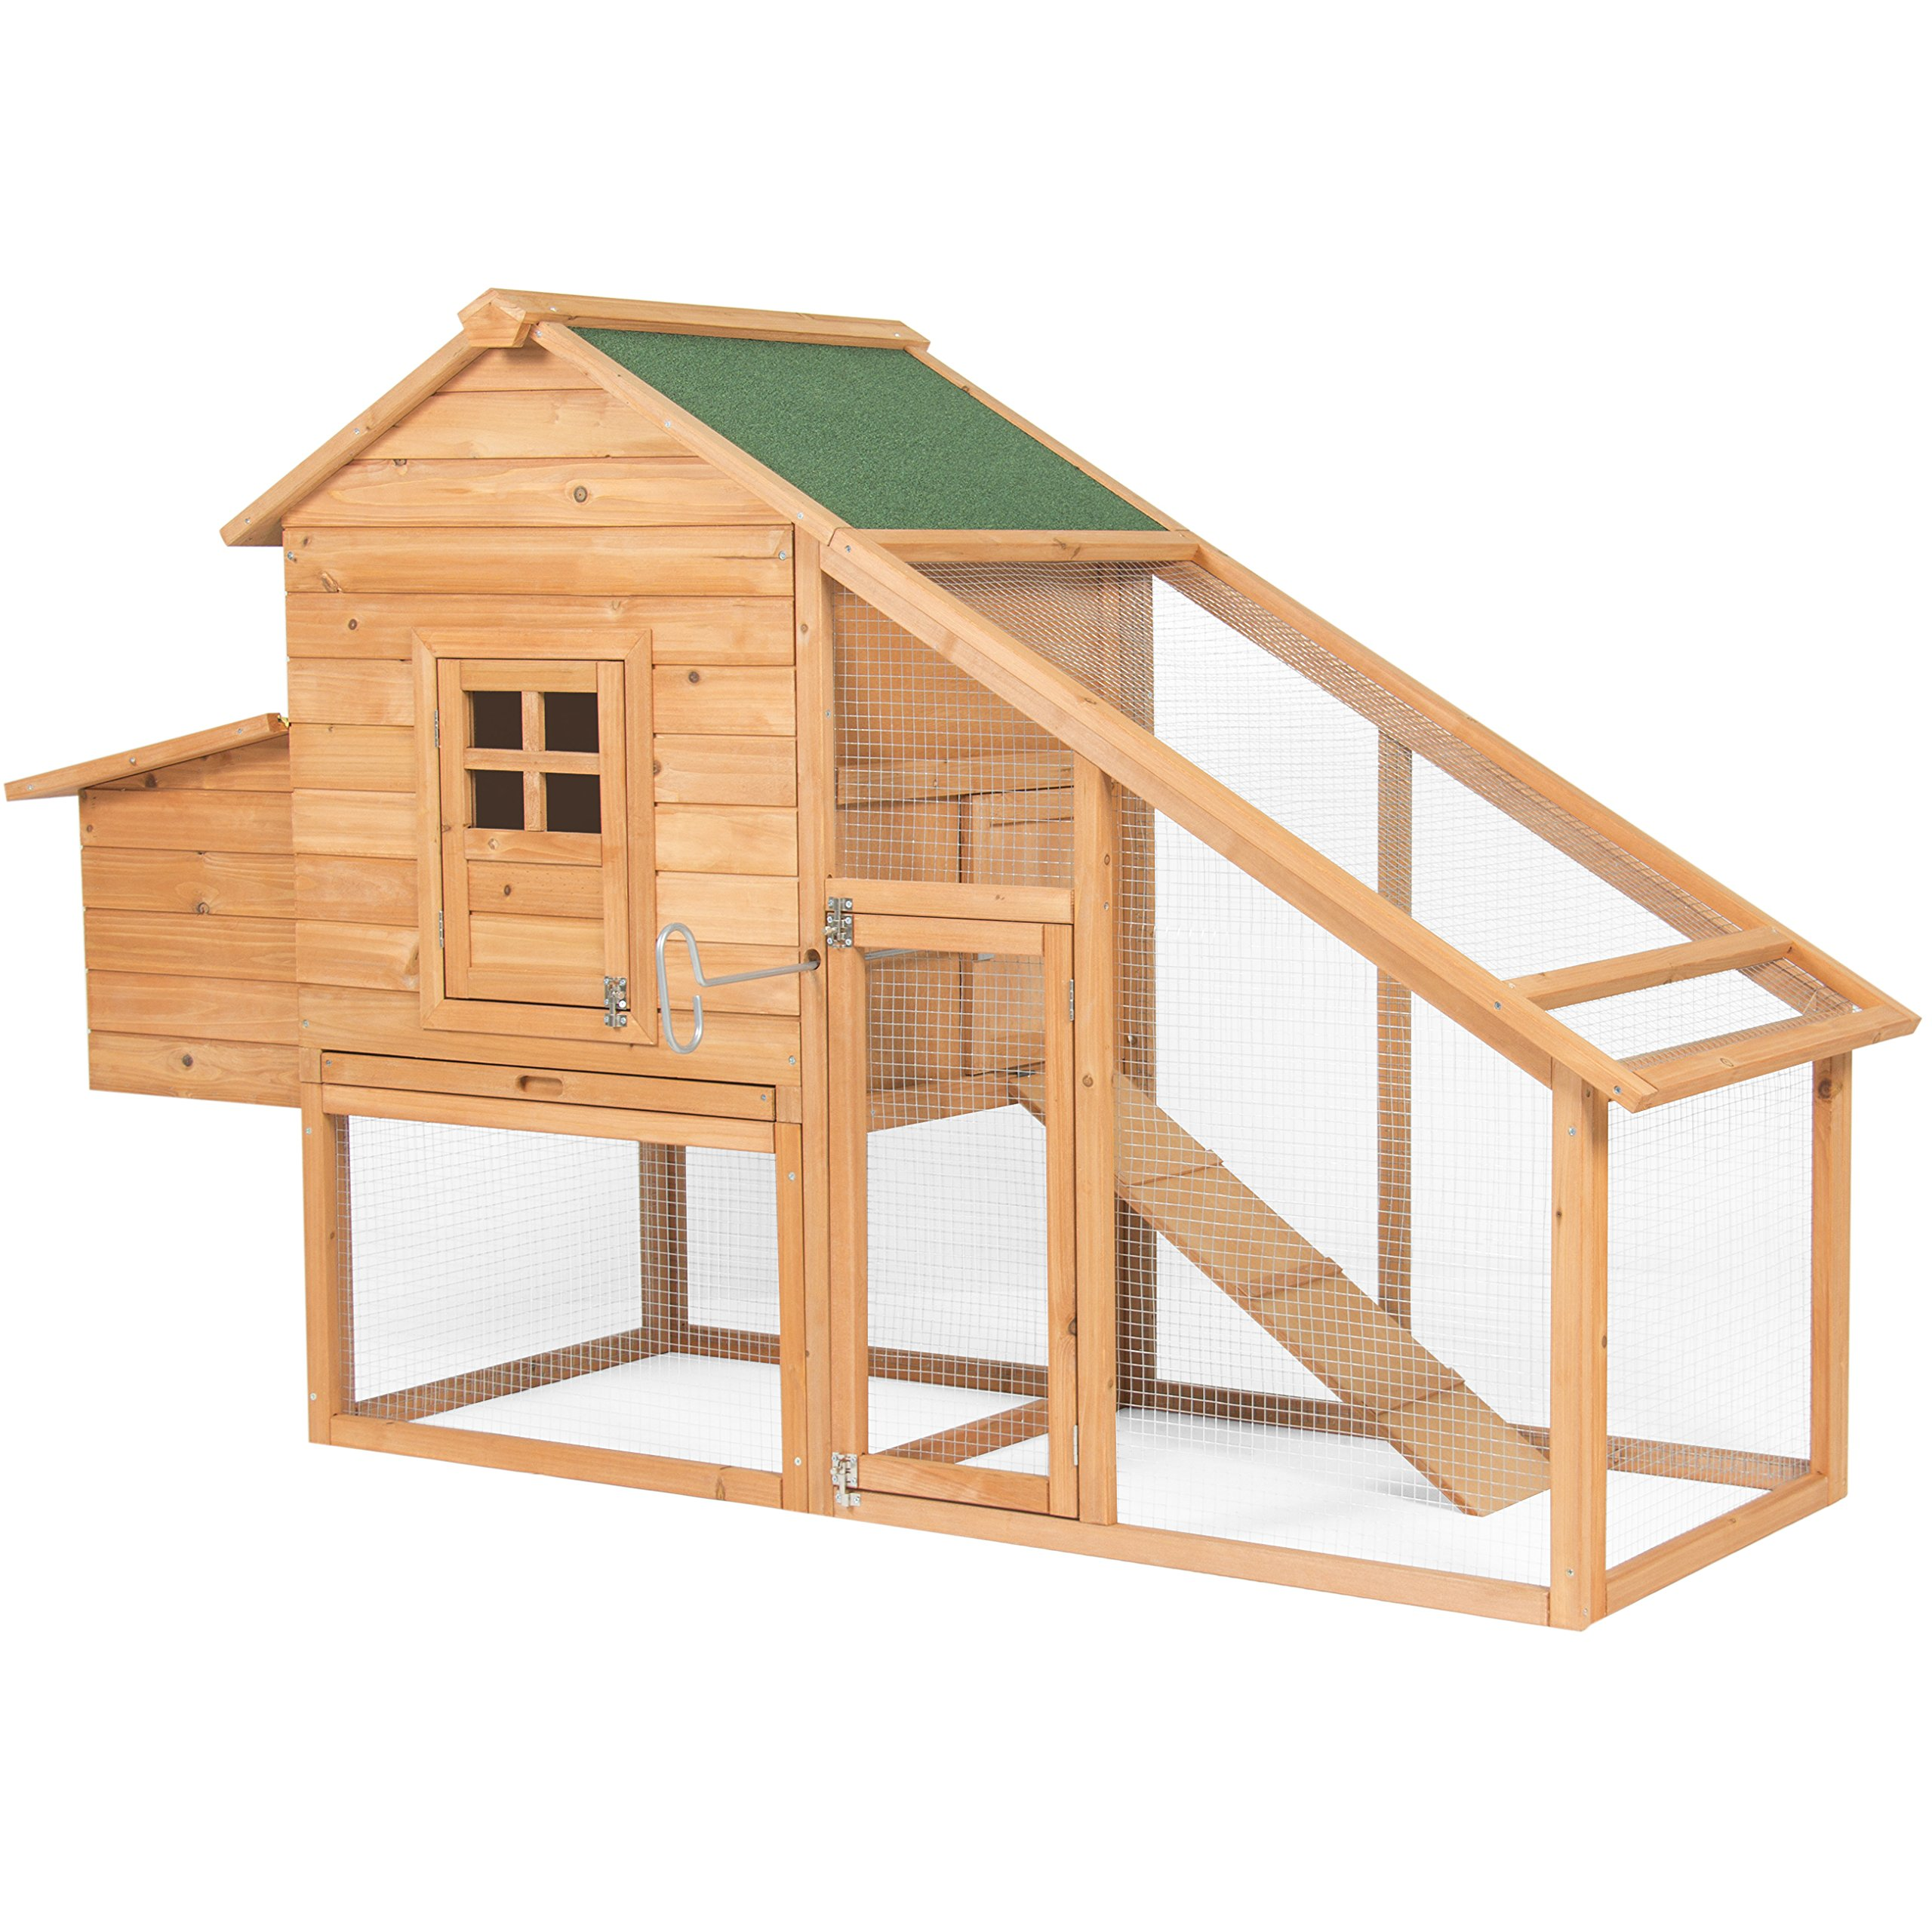 Best Choice Products 75in Wooden Chicken Coop Nest Box Hen House Poultry Cage Hutch w/ Ramp and Locking Doors - Brown